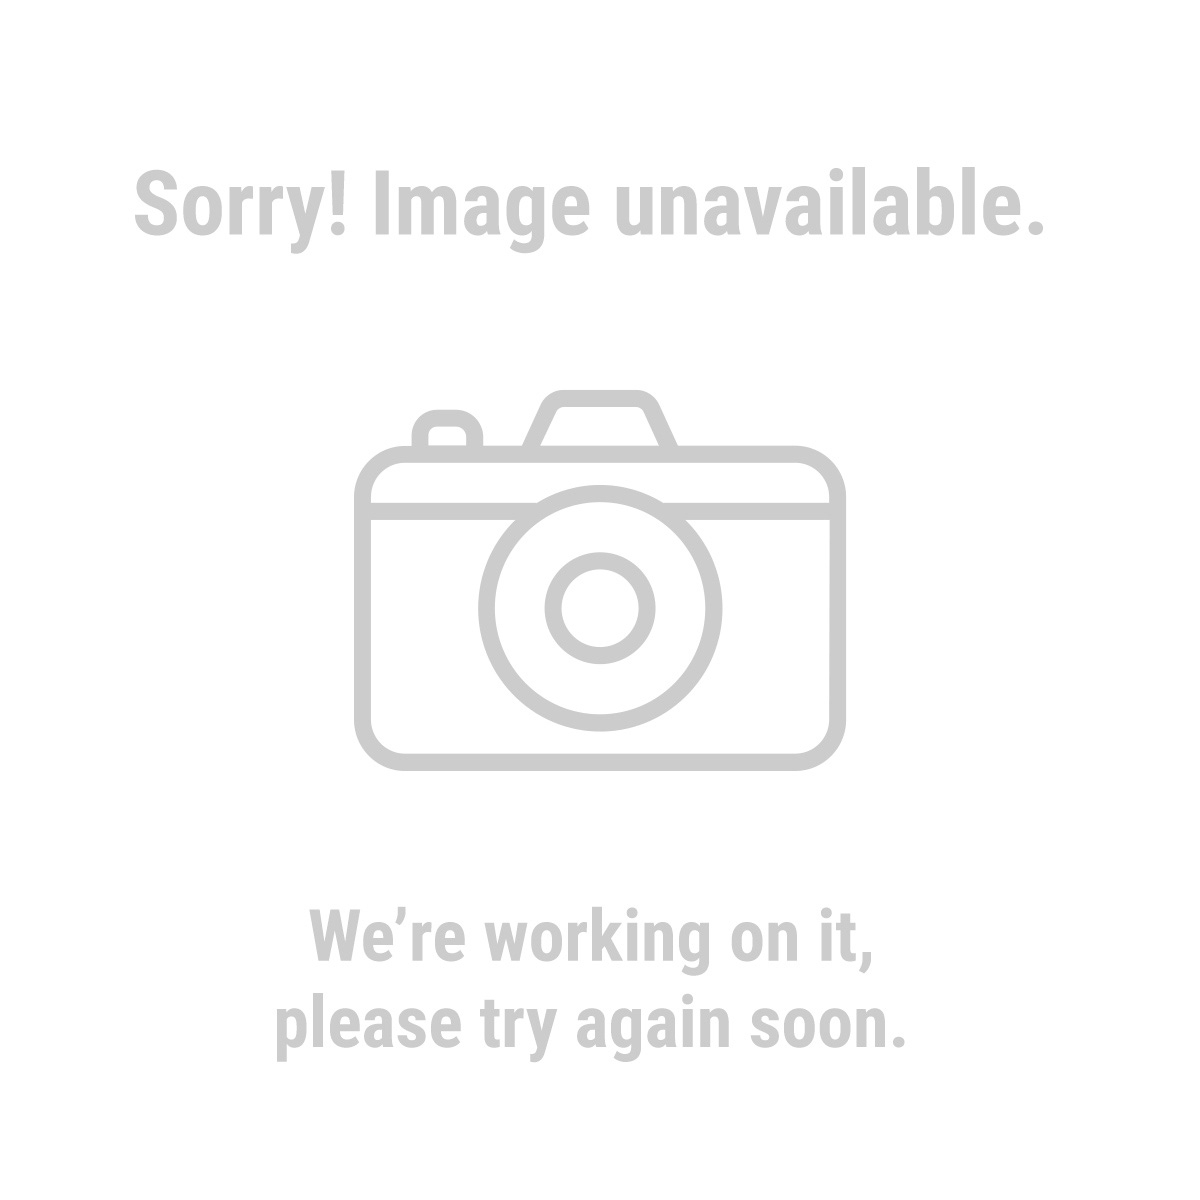 Pacific Hydrostar® 61904 1/6 HP Submersible Utility Pump 1350 GPH